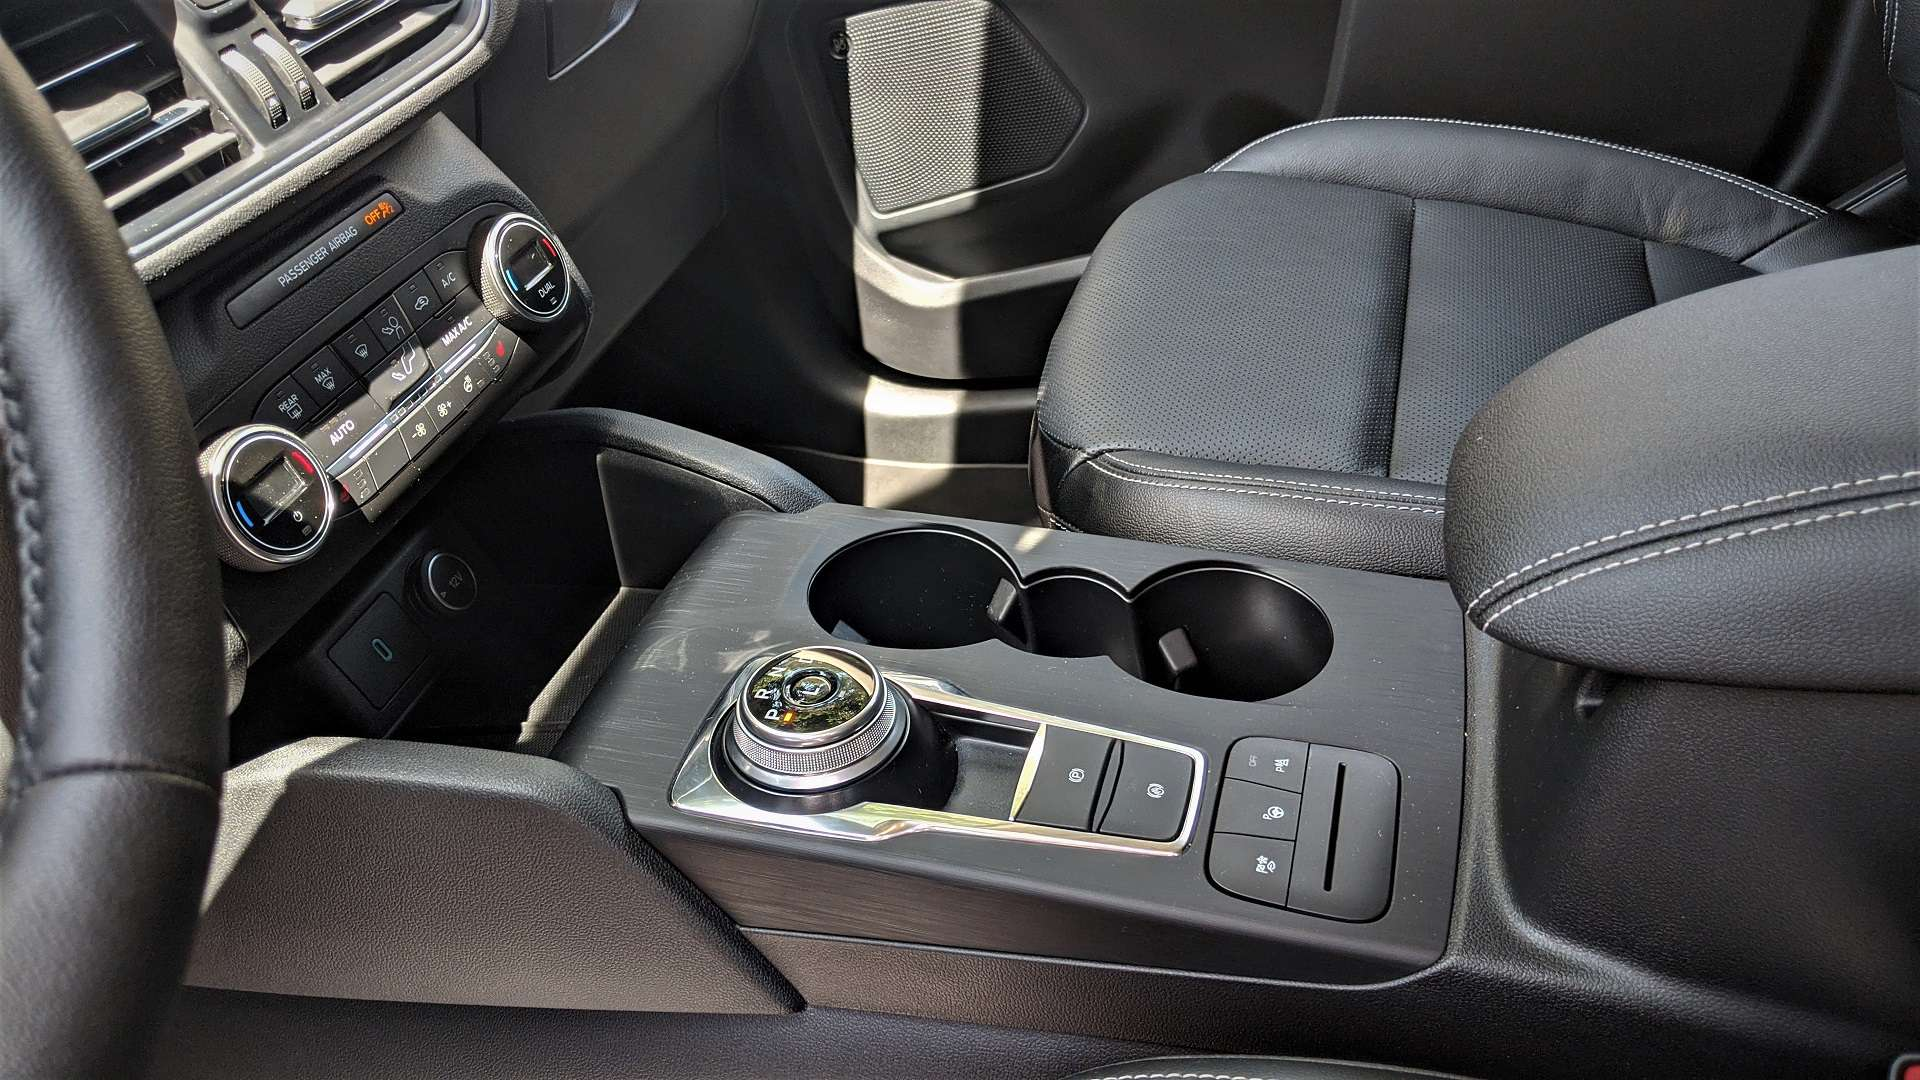 2020 Ford escape rotary gear shift dial